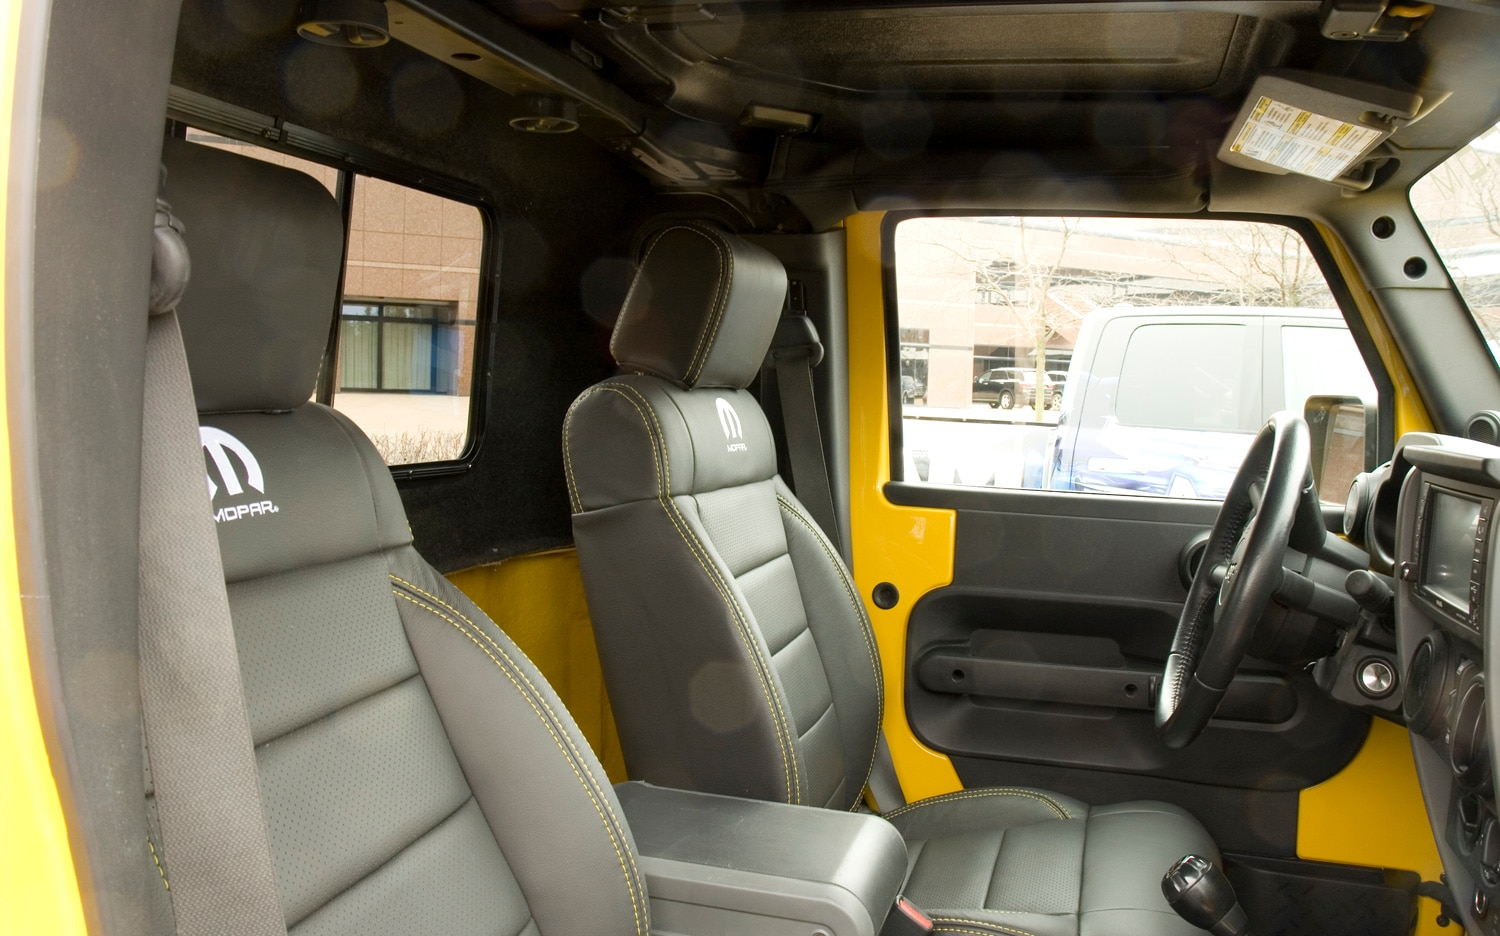 2011 Jeep Wrangler Jk8 Pickup Conversion Interior View